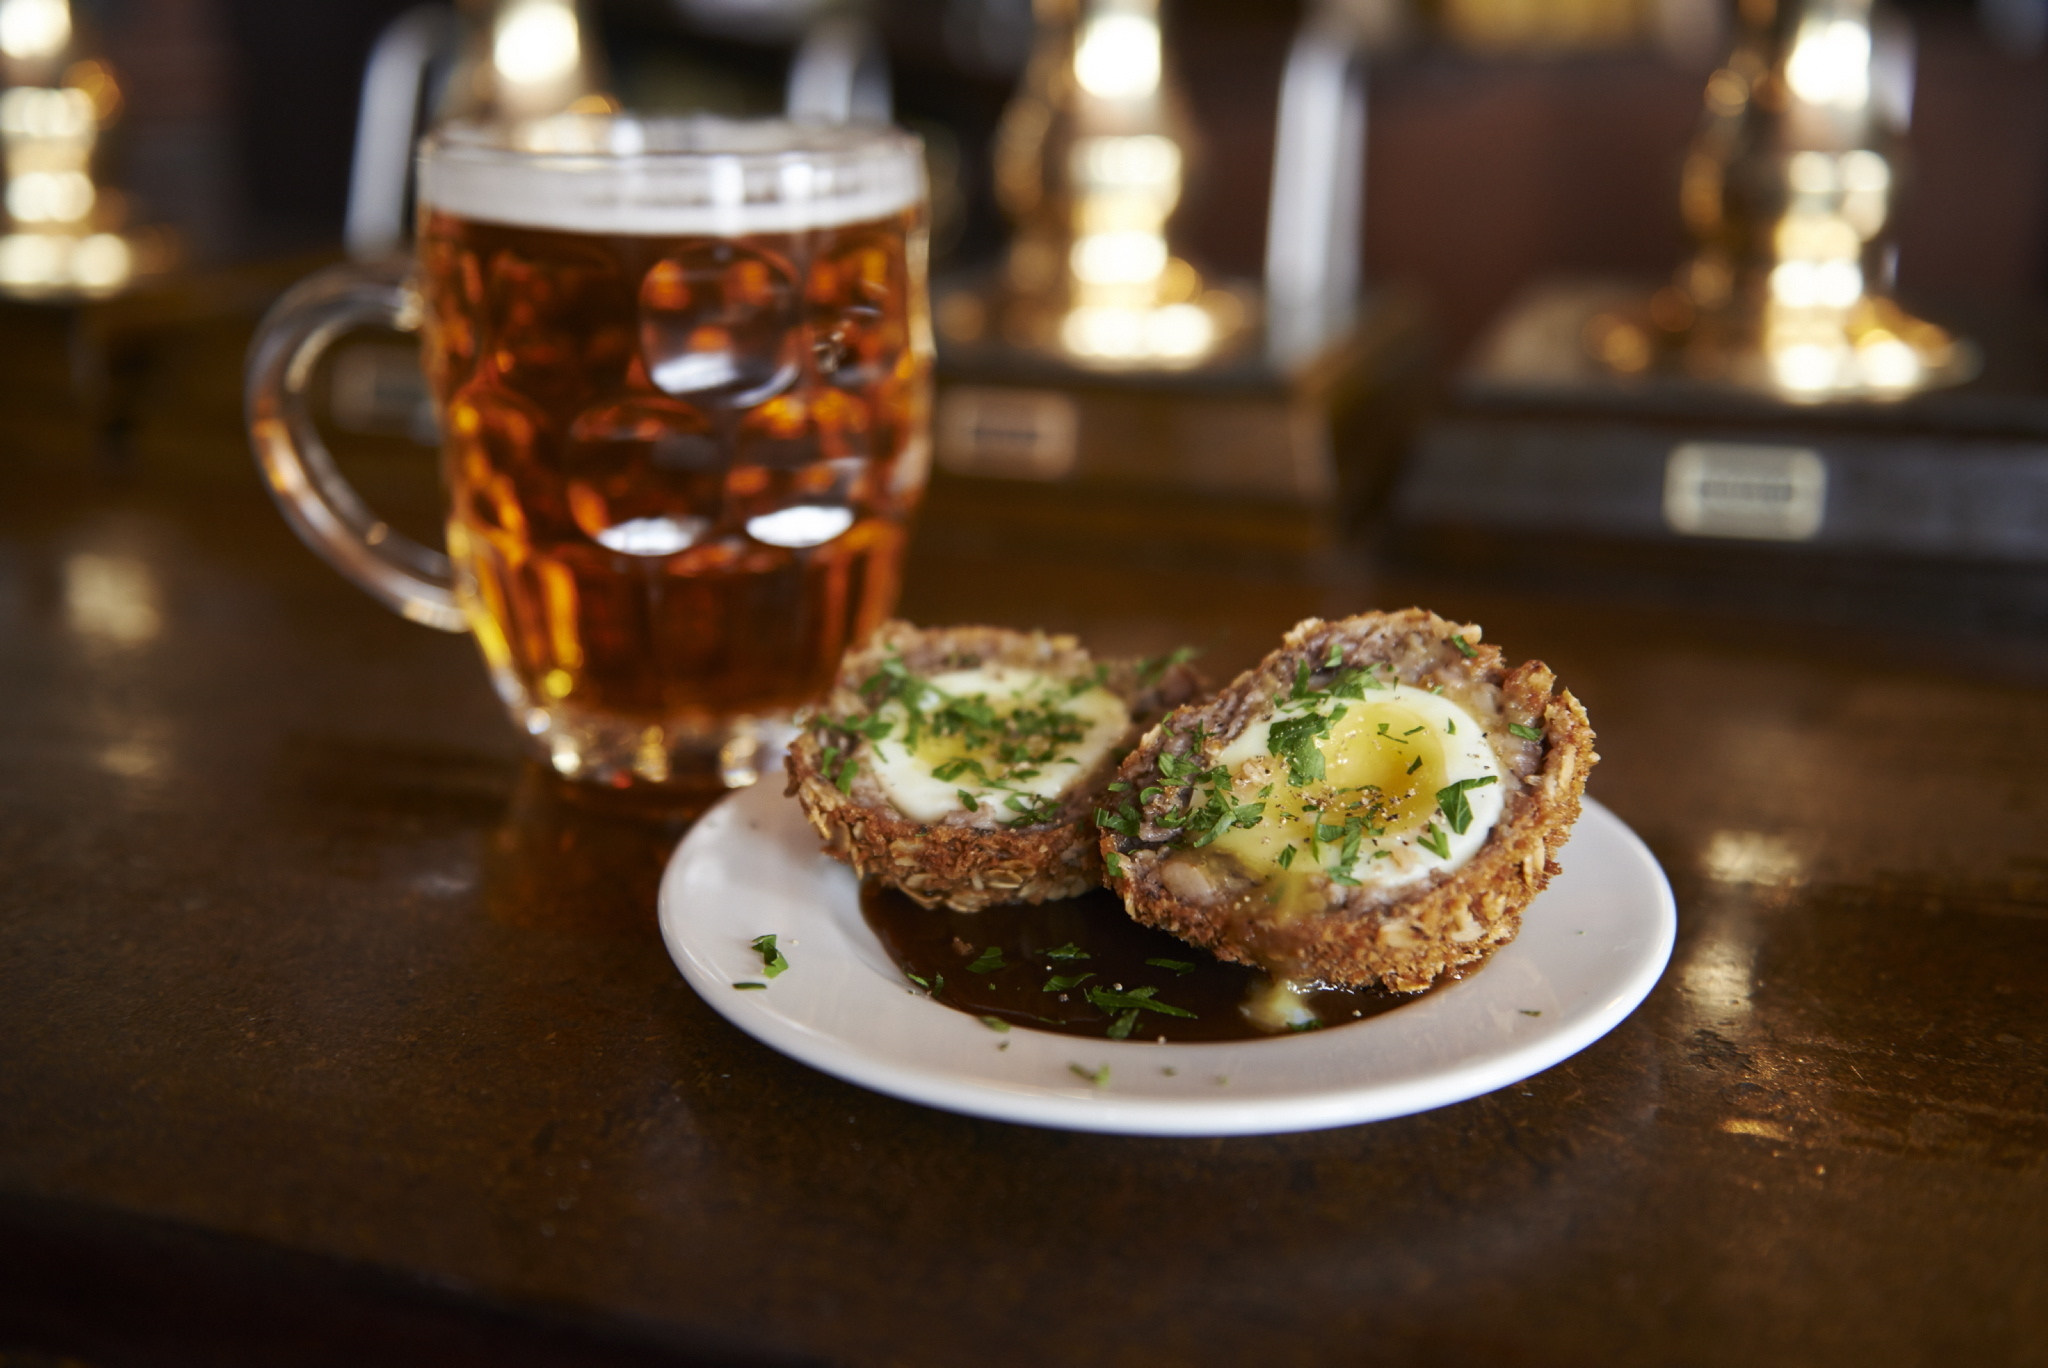 Feast Your Pork Pies On This! A Bar Snack Festival Is Coming To London photo